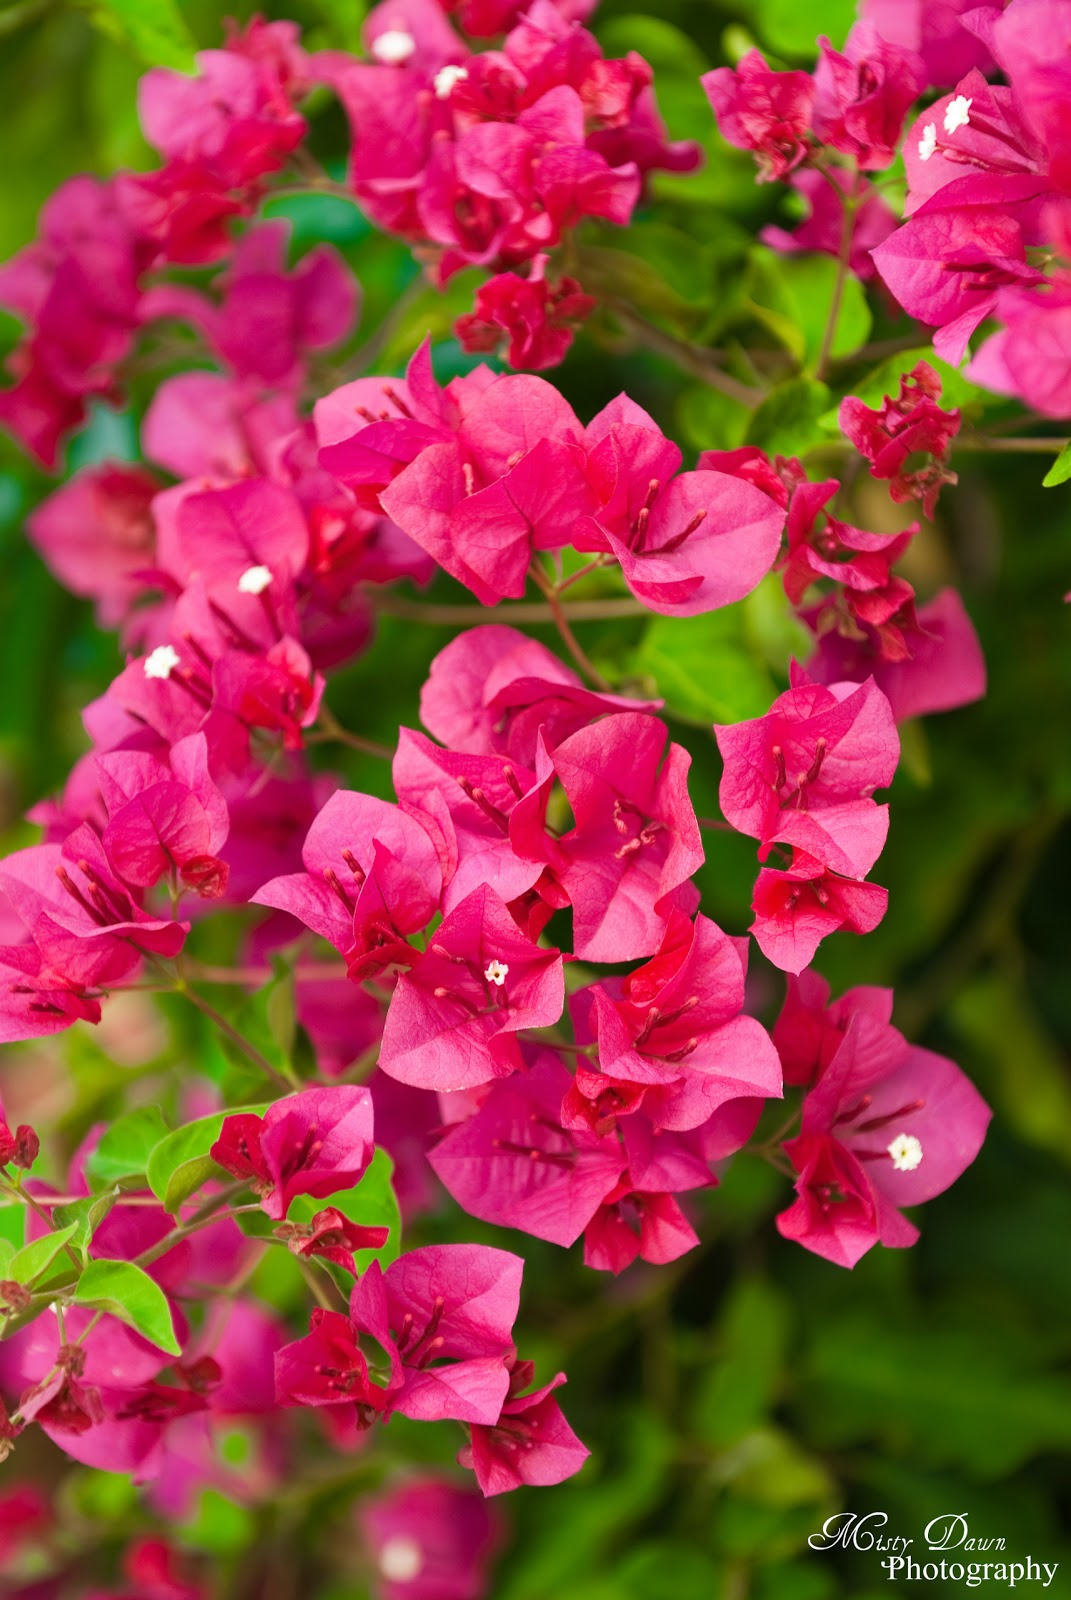 Through A Photographer's Eyes: Day 188 - Bougainvillea Plant